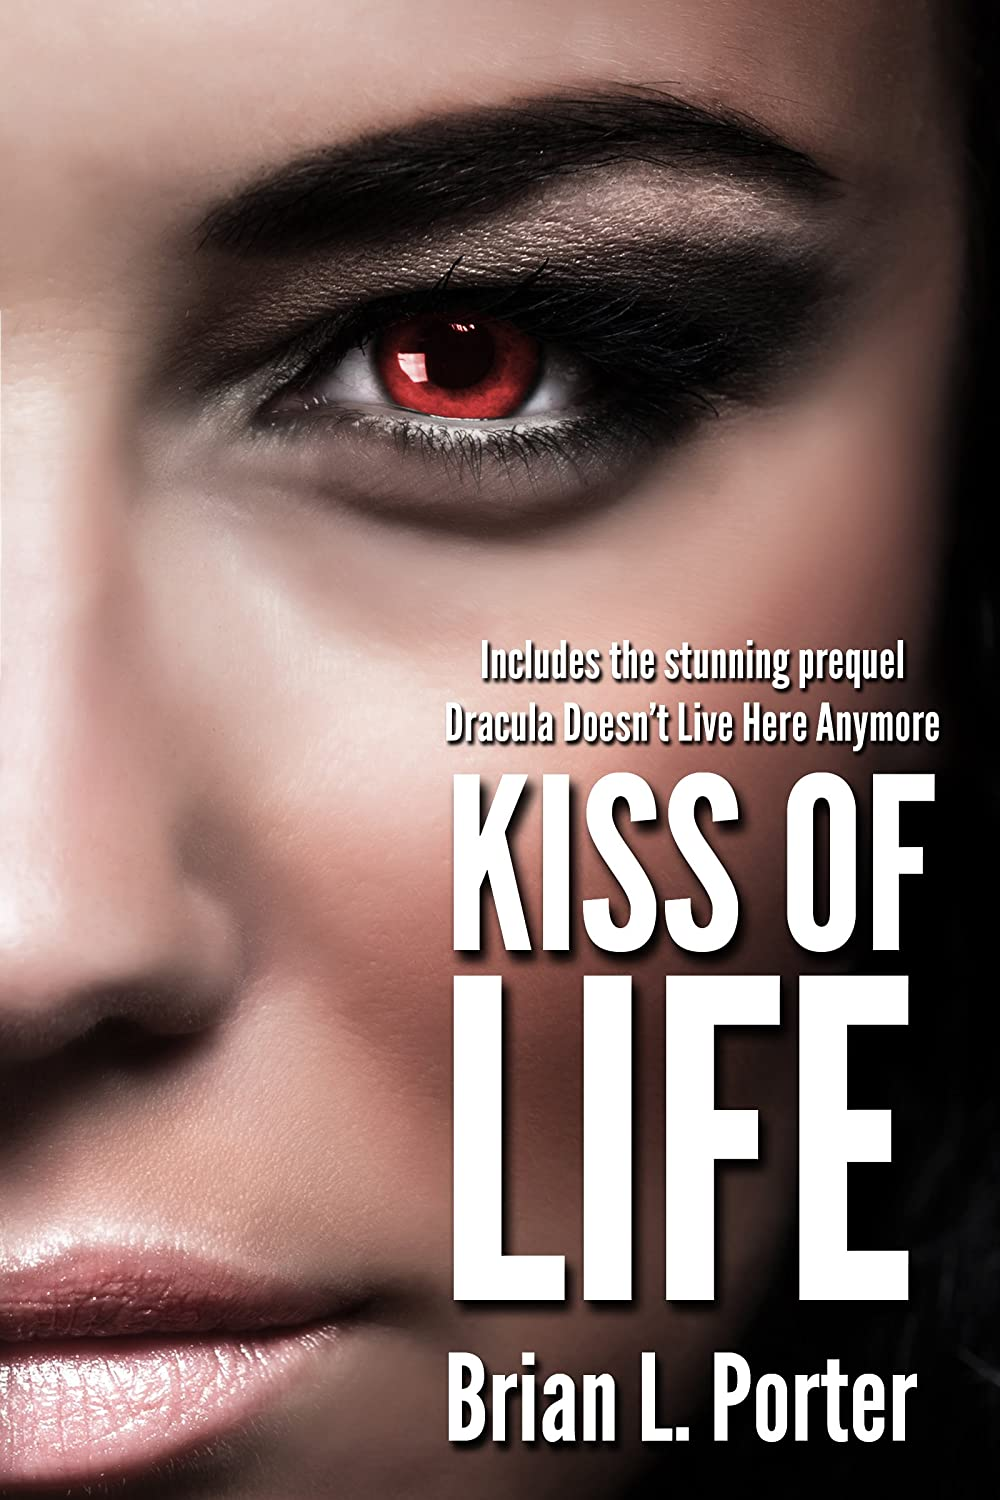 Kiss-Of-Life-Complete-Cover_750